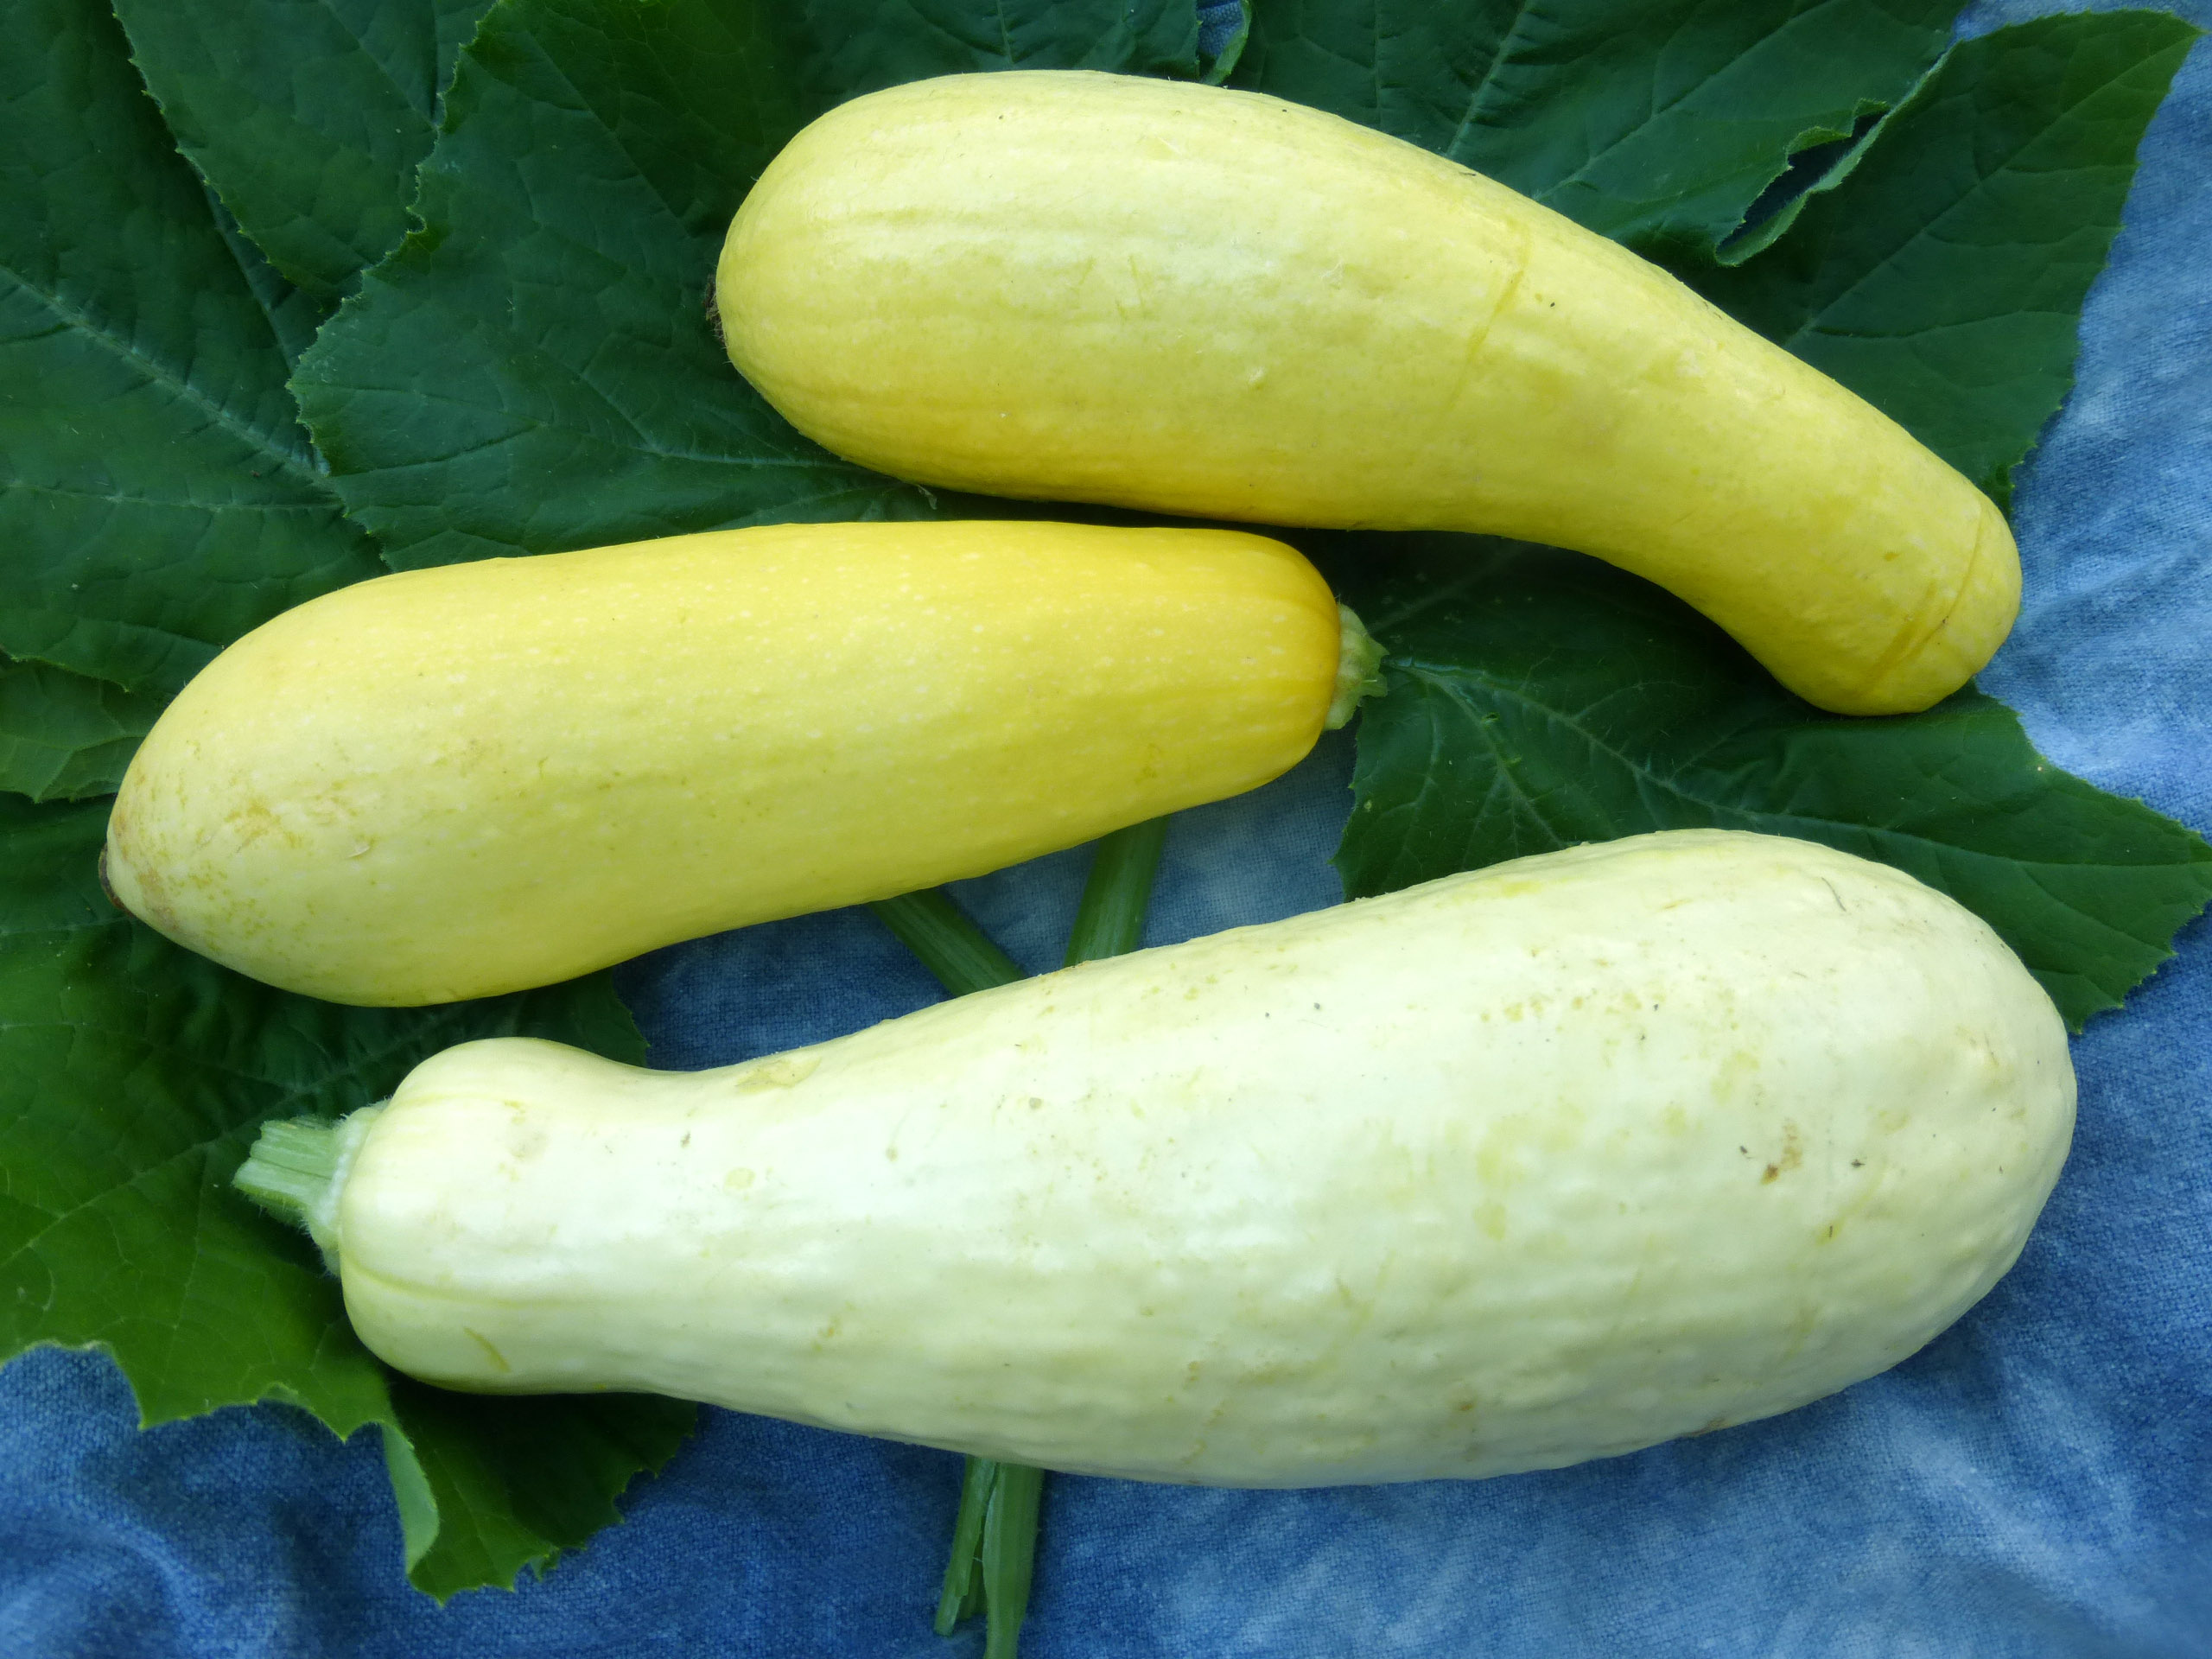 Discussion on this topic: How to Save Spaghetti Squash Seeds, how-to-save-spaghetti-squash-seeds/